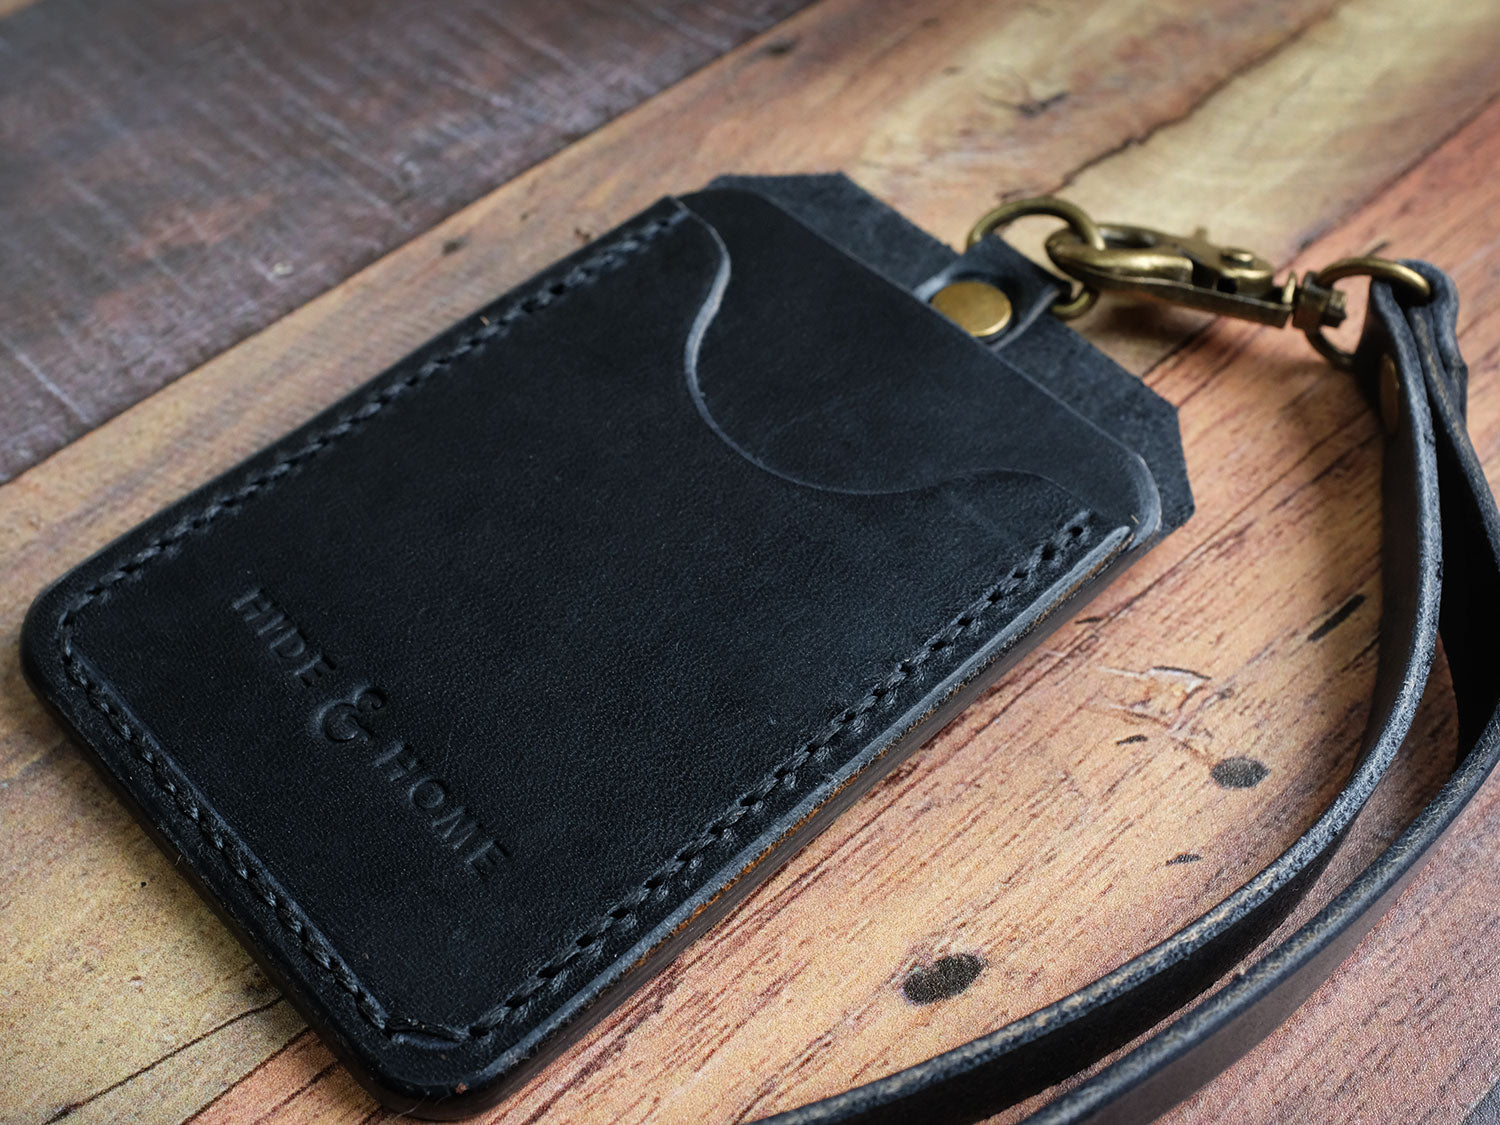 Italian Leather ID Holder with Lanyard - Black